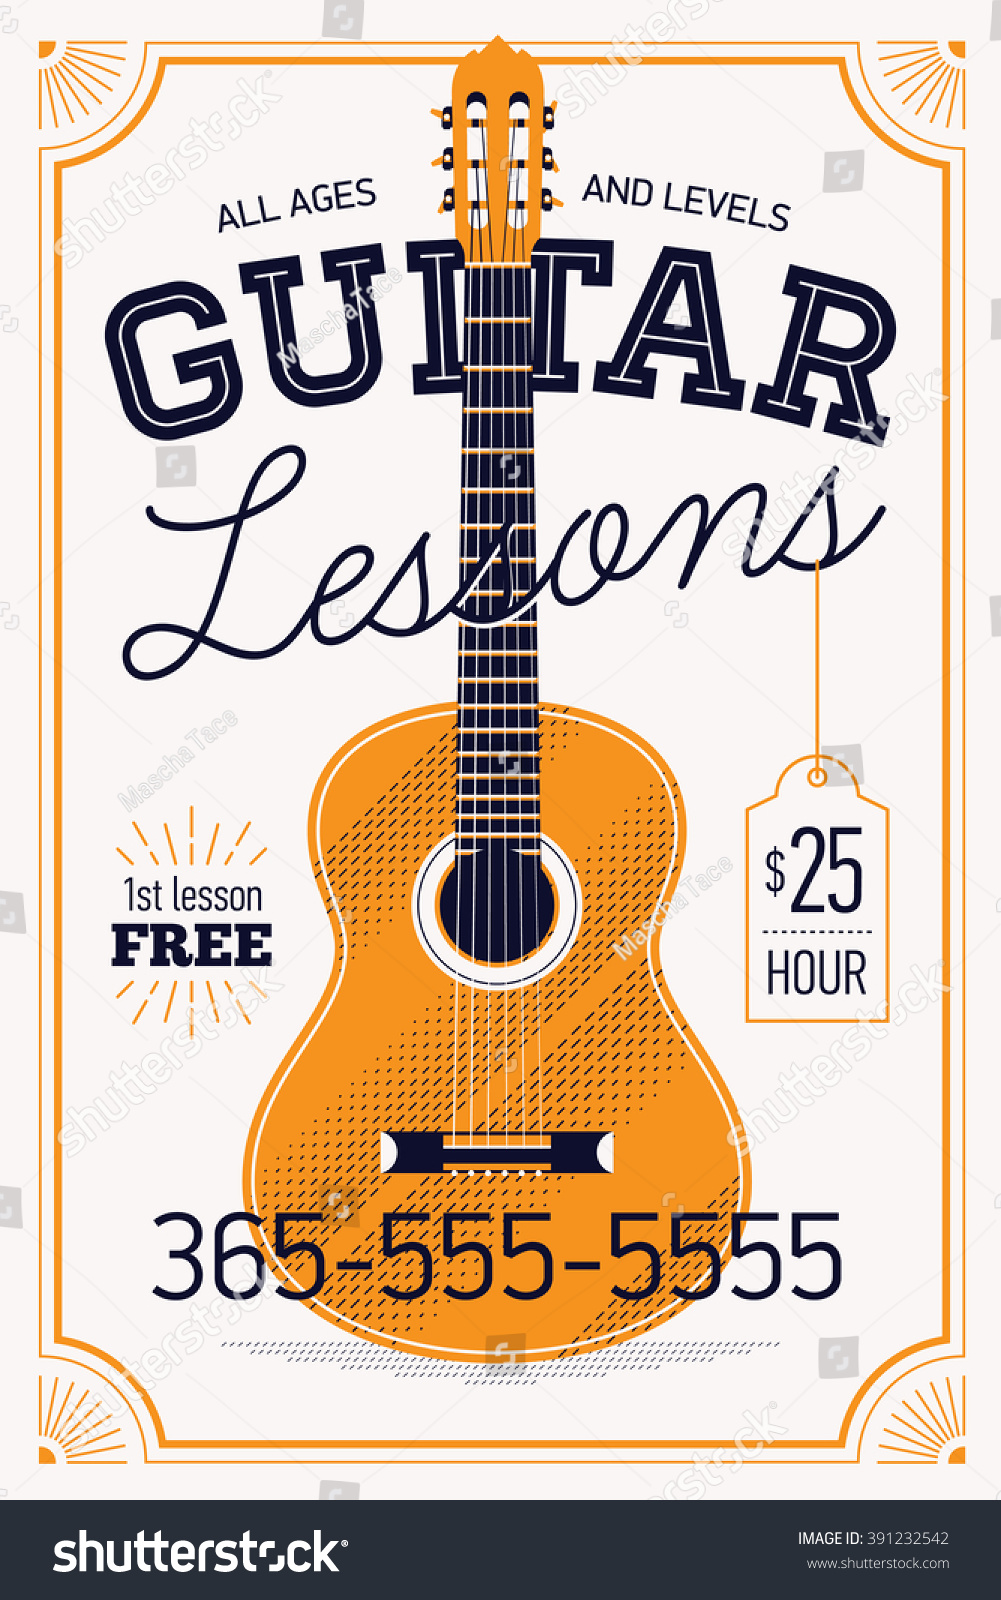 Guitar Lessons Vector Poster Or Banner Template With Vintage Feel Musical Education Concept Layout